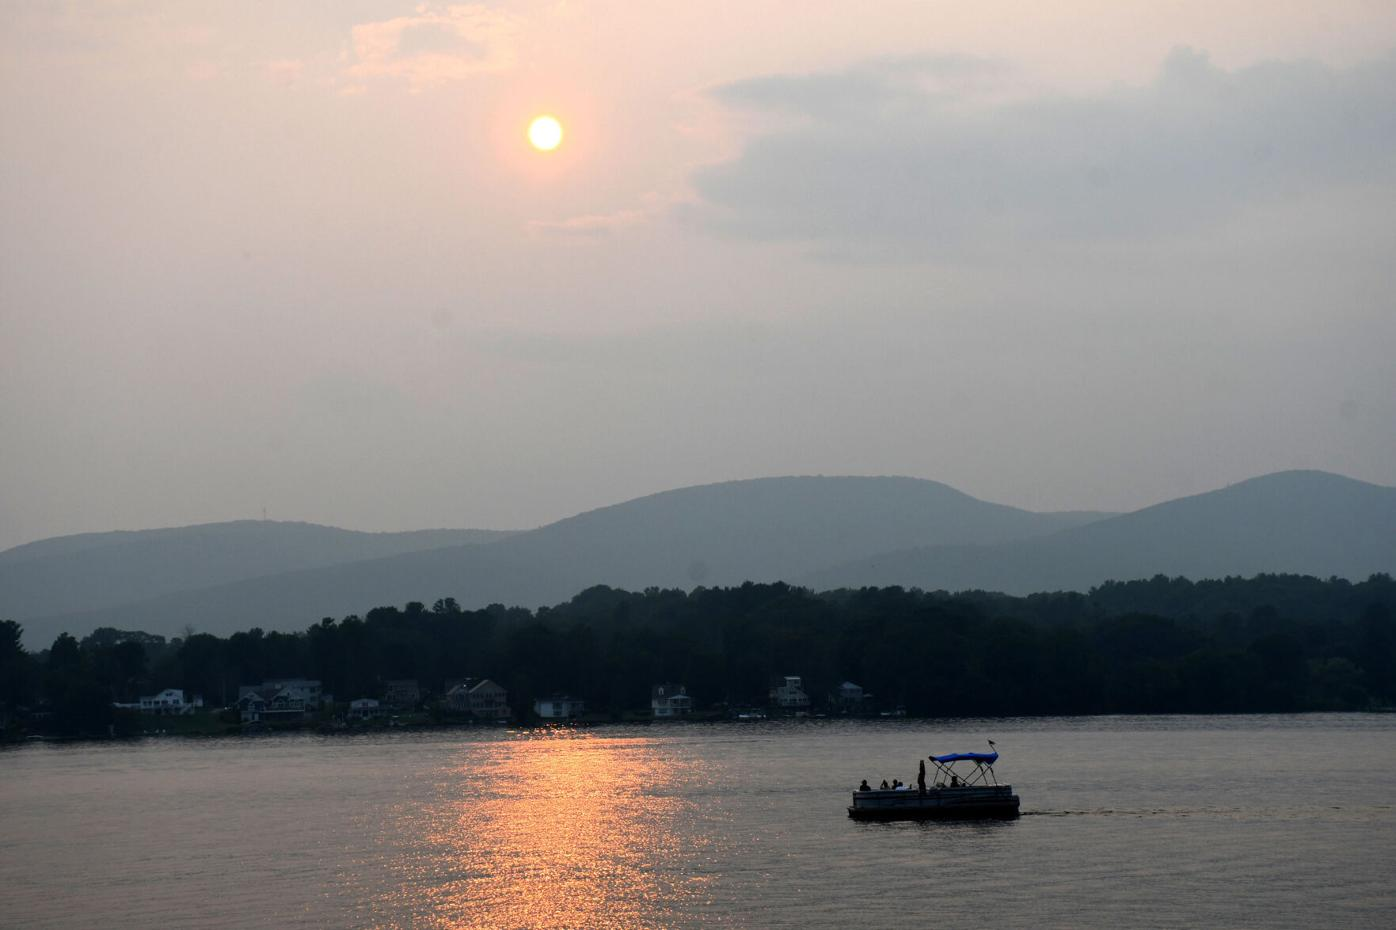 Sun sets over lake with boat in foreground